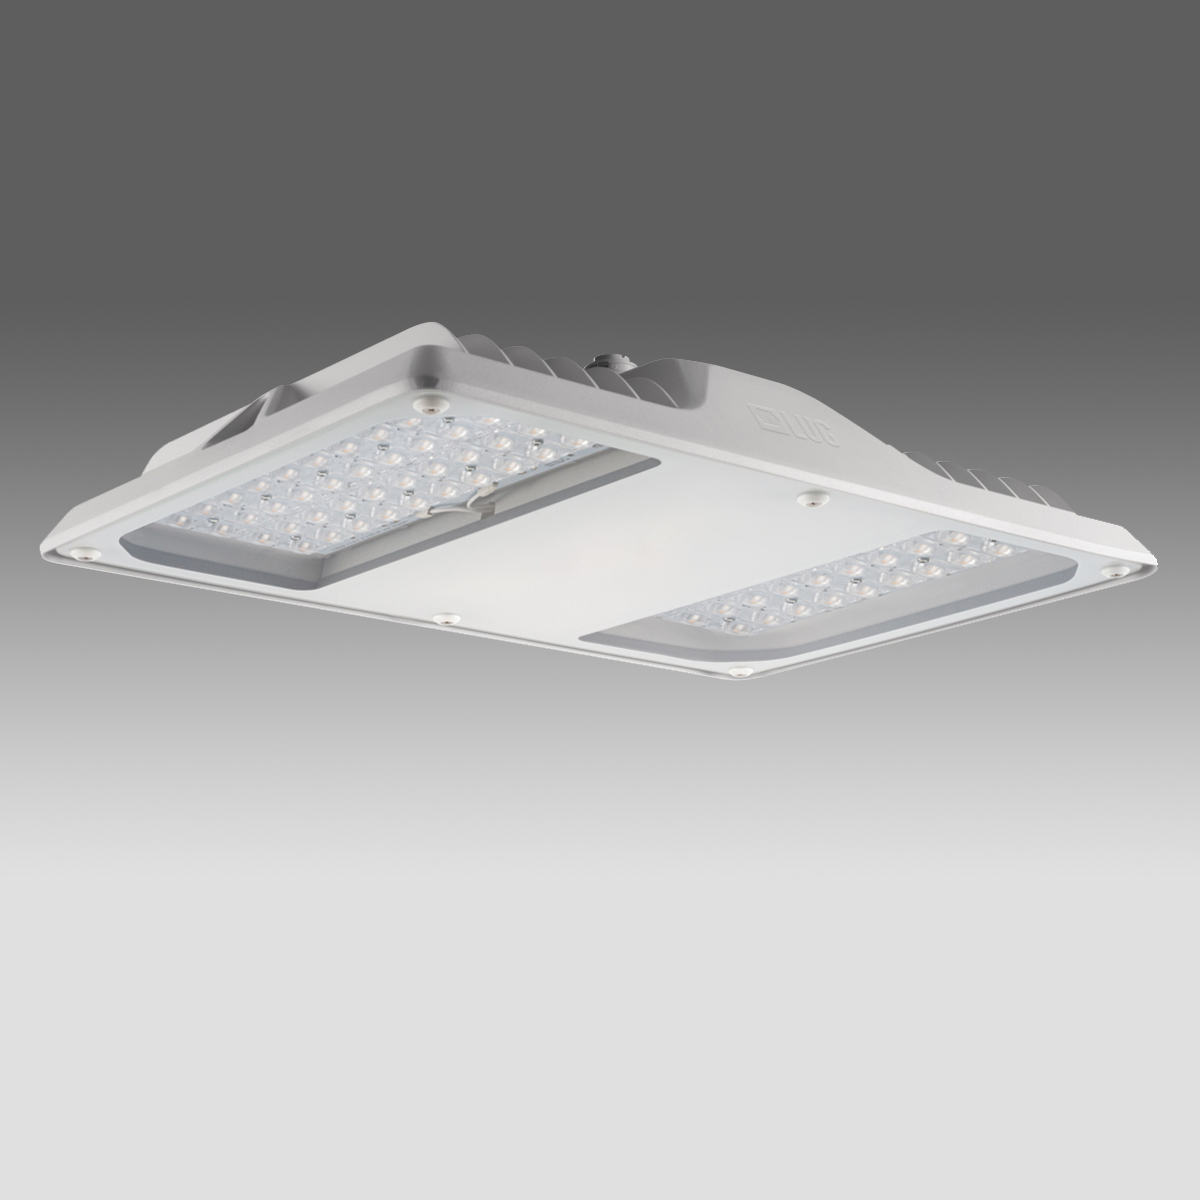 1 Stk Arktur Square PLUS LED 206W 22600lm/840 EVG IP65 110° grau LIG4254013